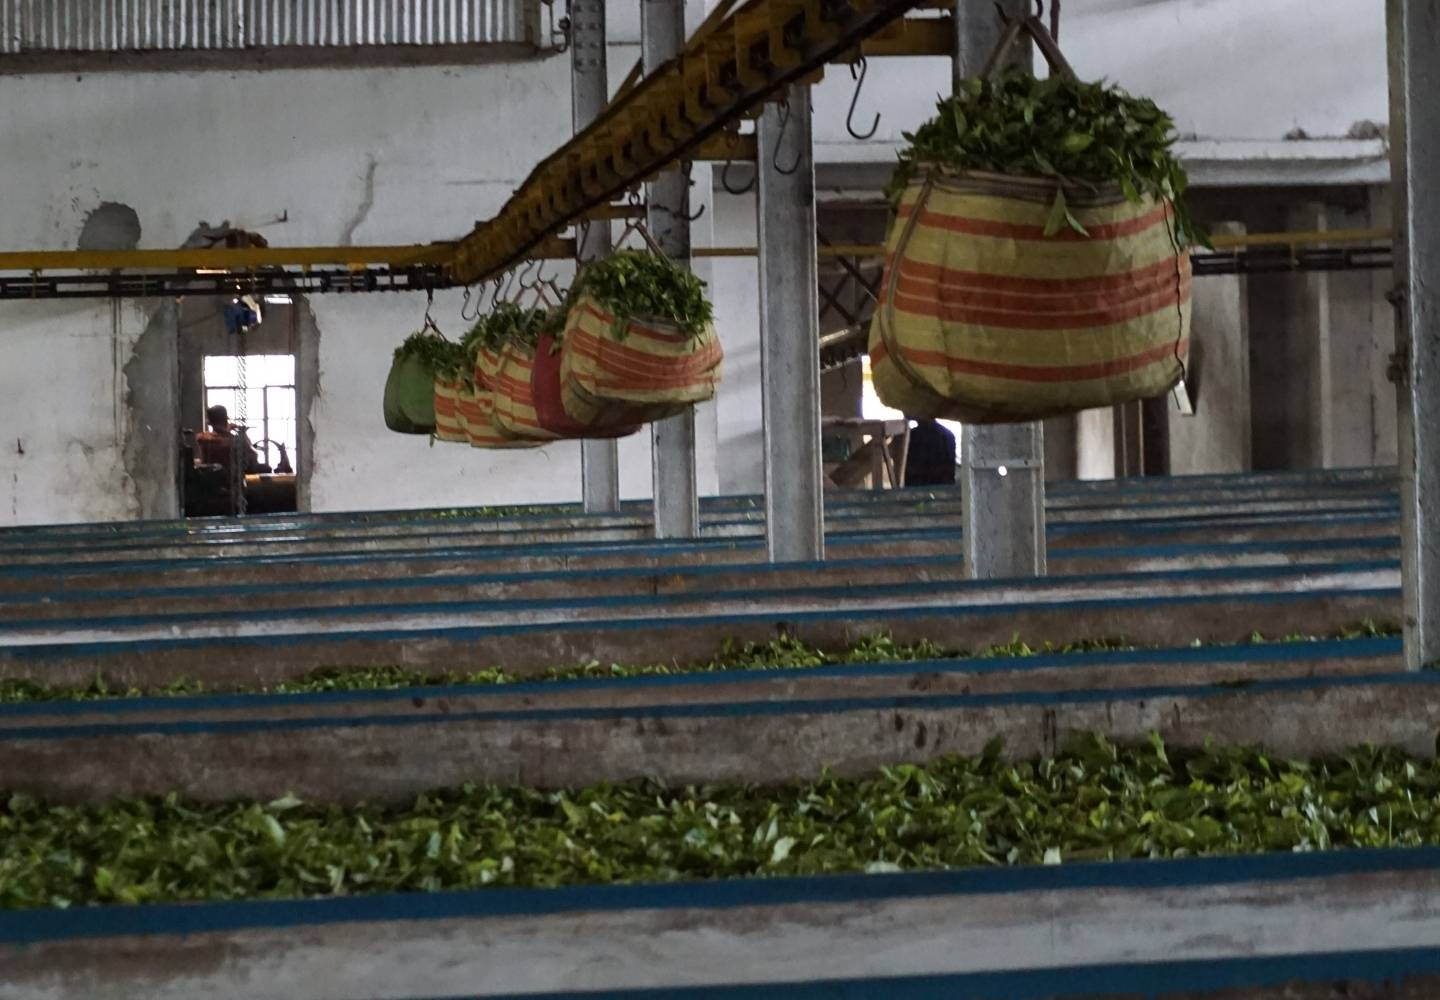 Cut Tear Curl (CTC) machinery in India, processing freshly picked tea leaves. Huge bags of tea leaves are hanging on a pulley system, which is sat above belts of tea leaves.